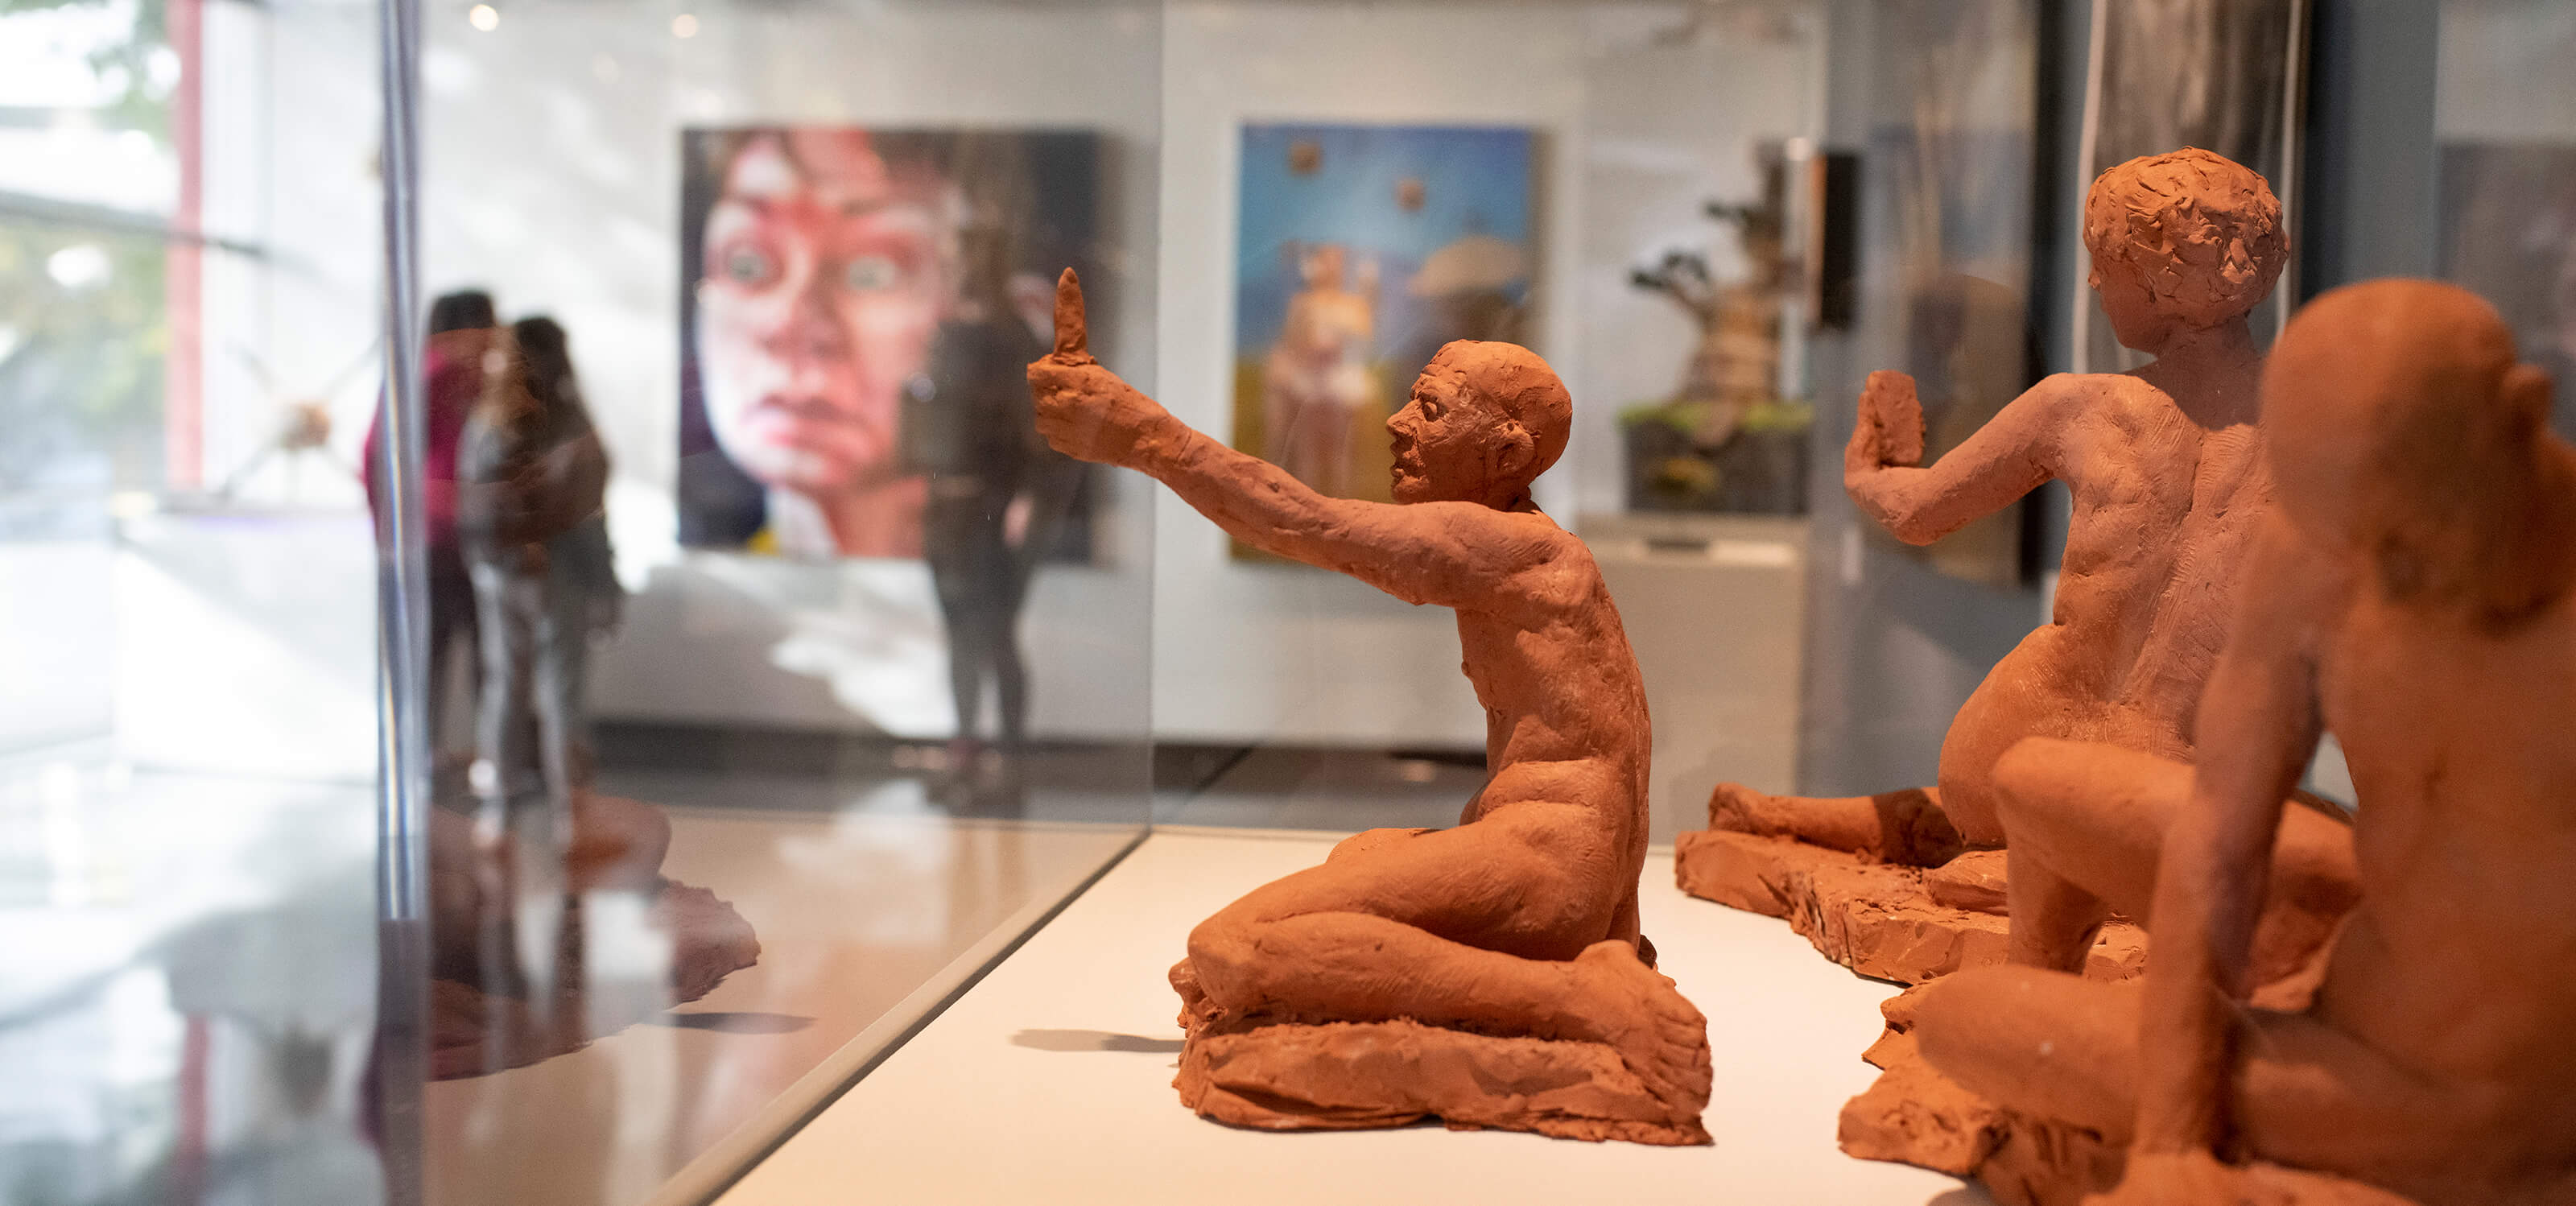 Three terracotta figure sculptures by Alecia Rossano on display at the Bellevue Art Museum.